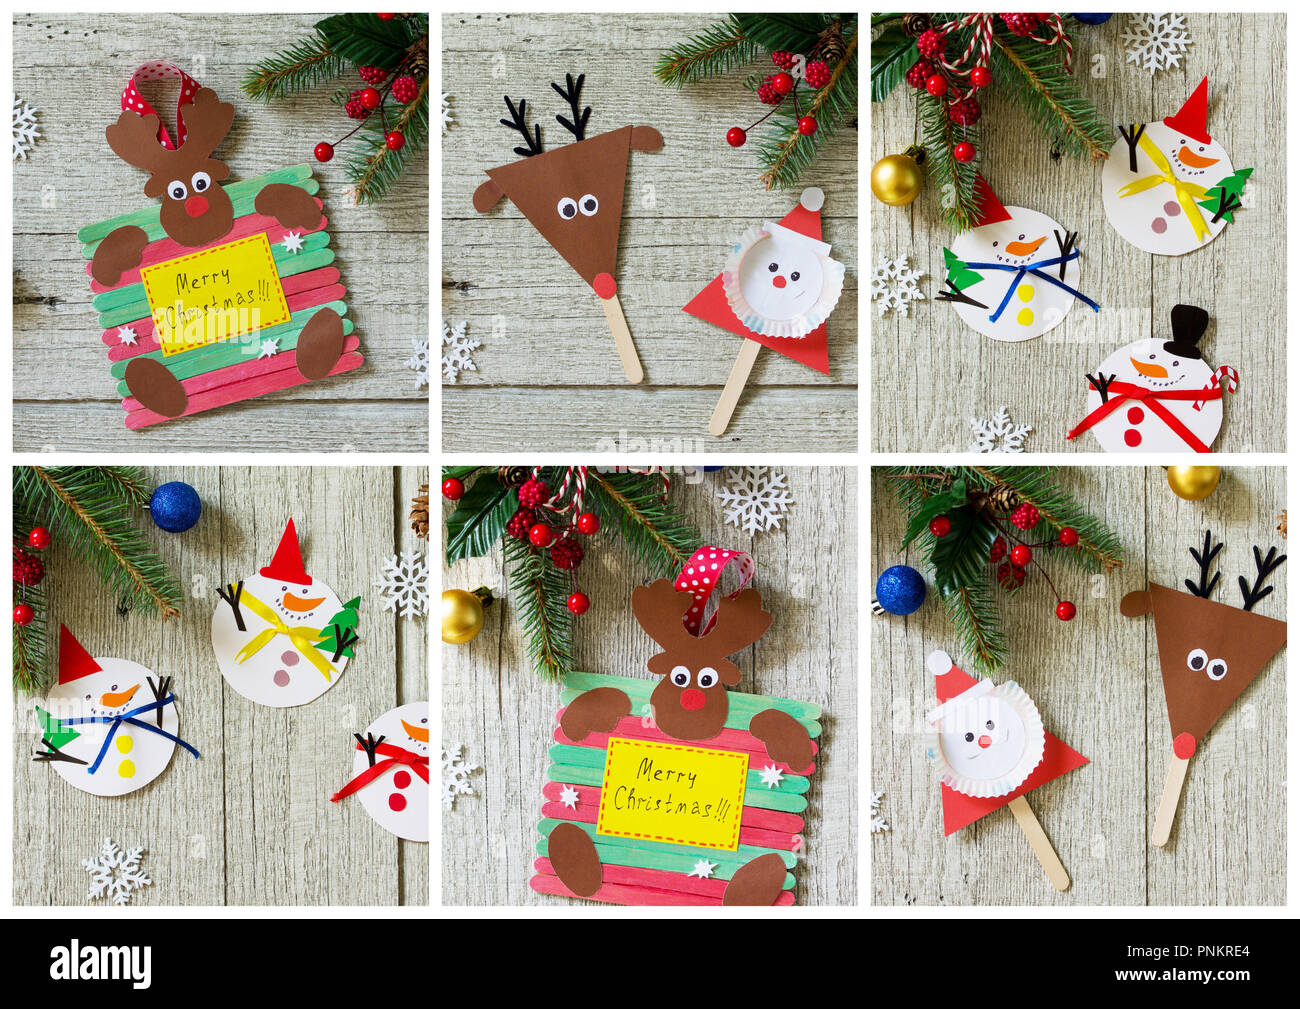 Merry Gift Collage On Wooden Table Handmade Project Of Children S